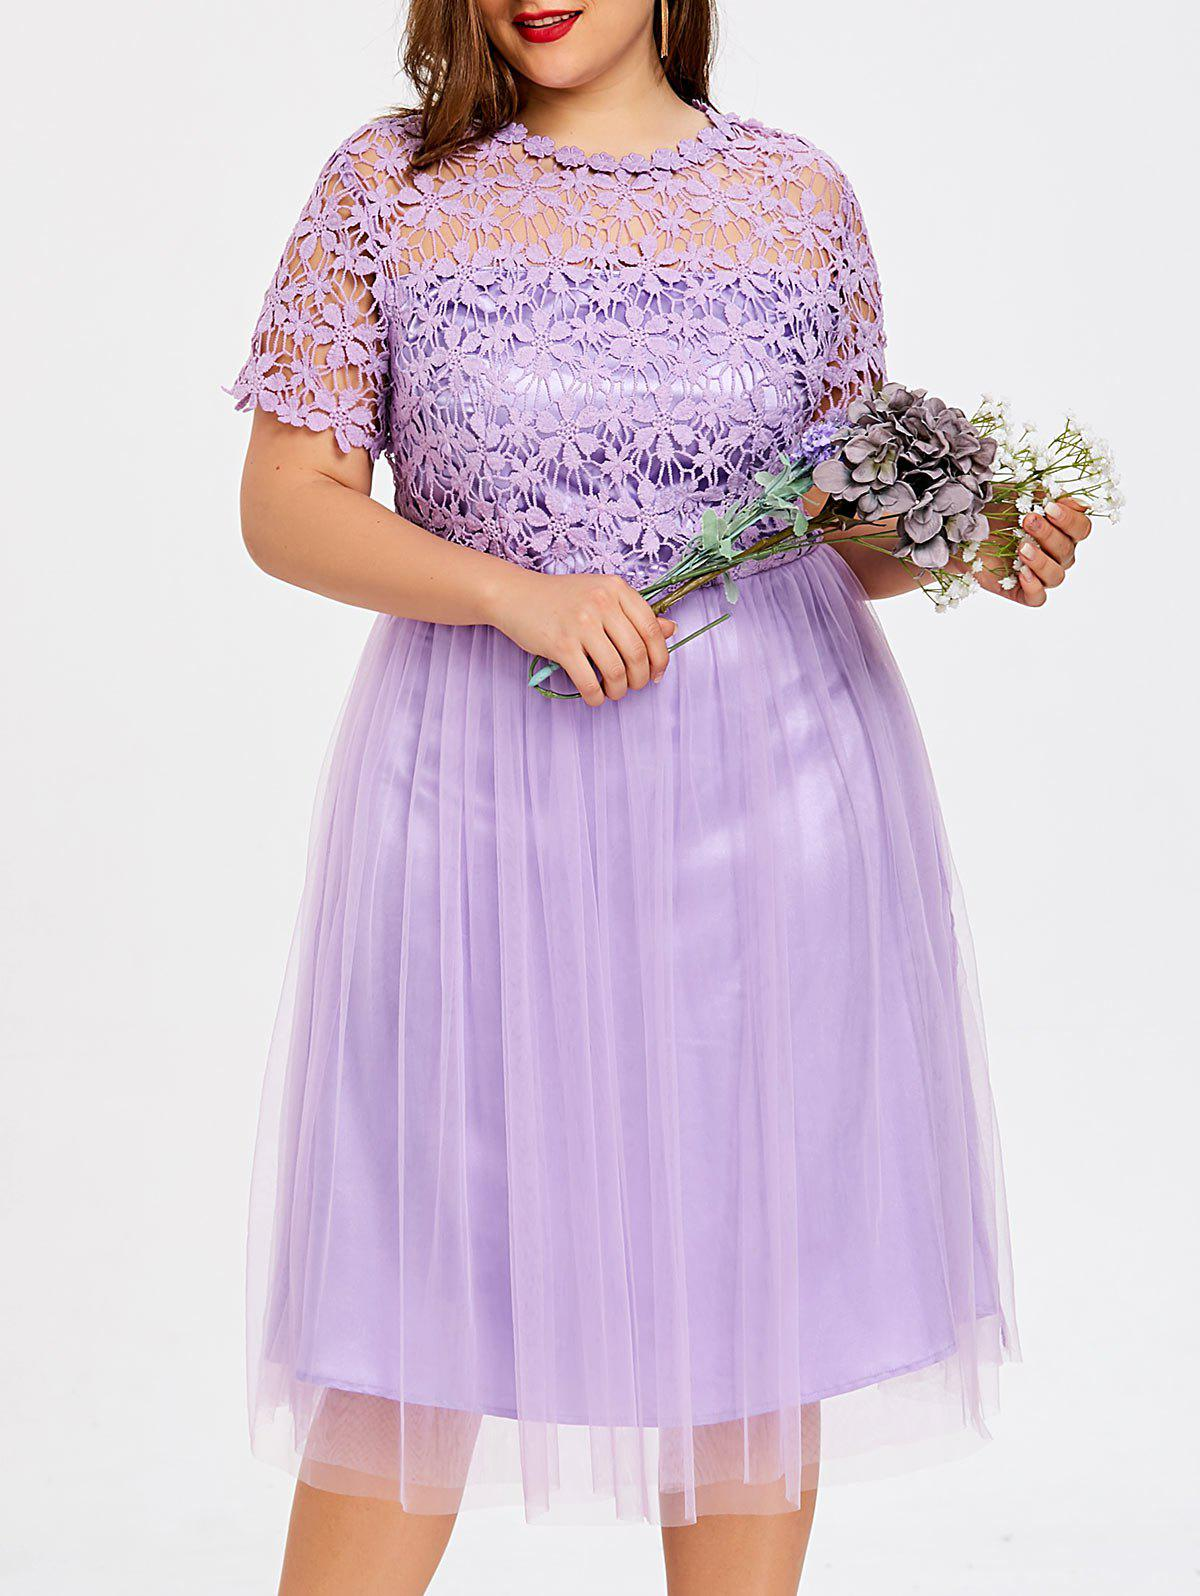 2018 plus size lace panel tulle bridesmaid dress light purple xl in plus size lace panel tulle bridesmaid dress light purple 5xl ombrellifo Images